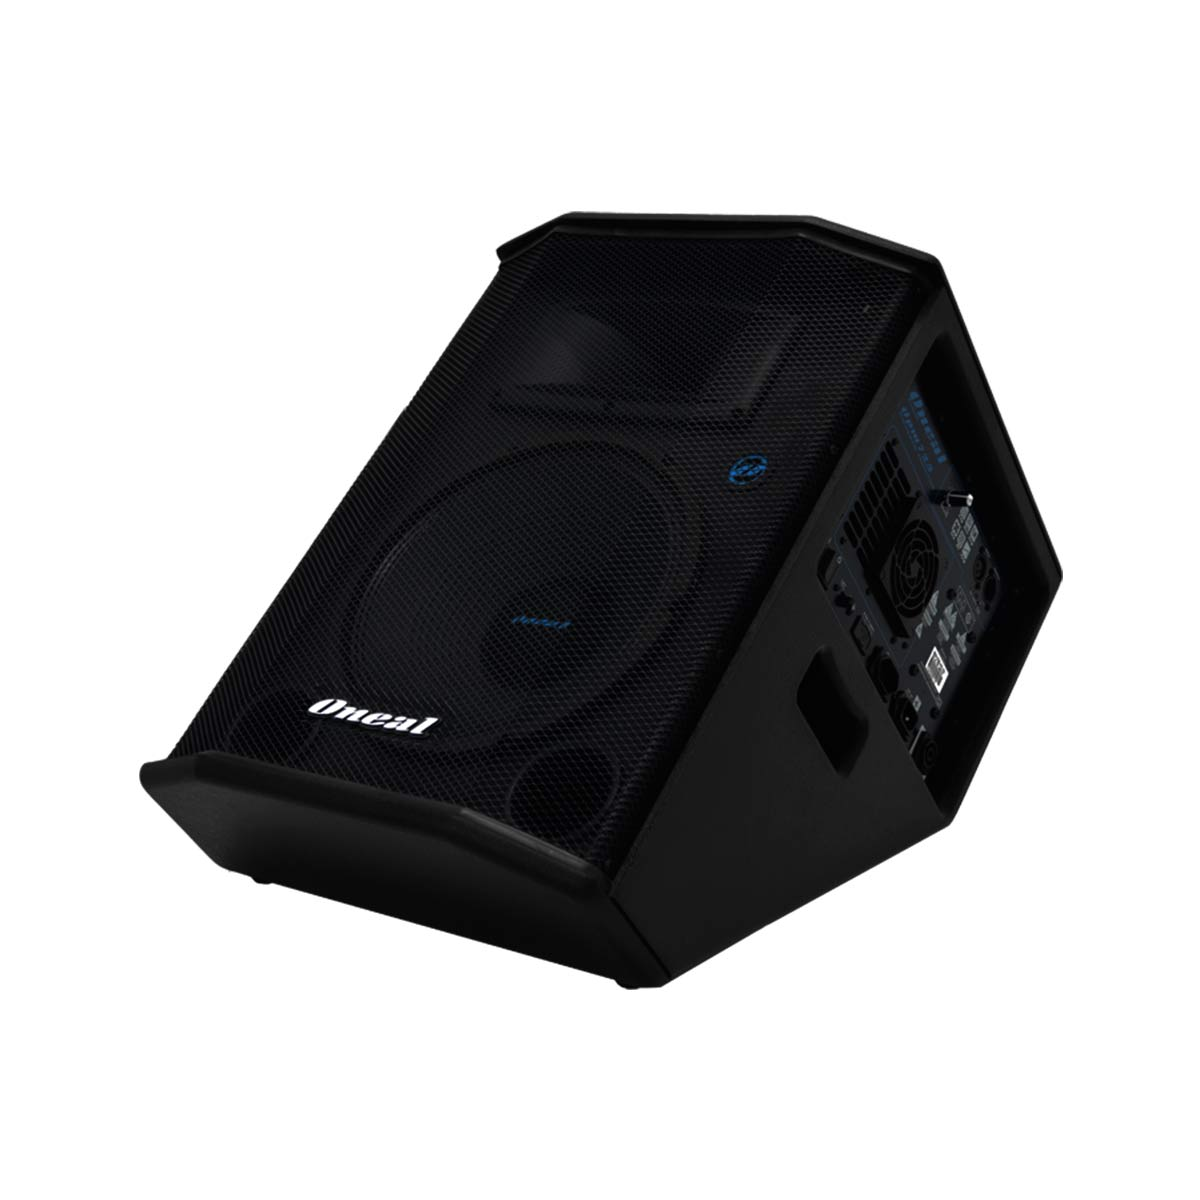 OPM725 - Monitor Ativo 200W OPM 725 - Oneal